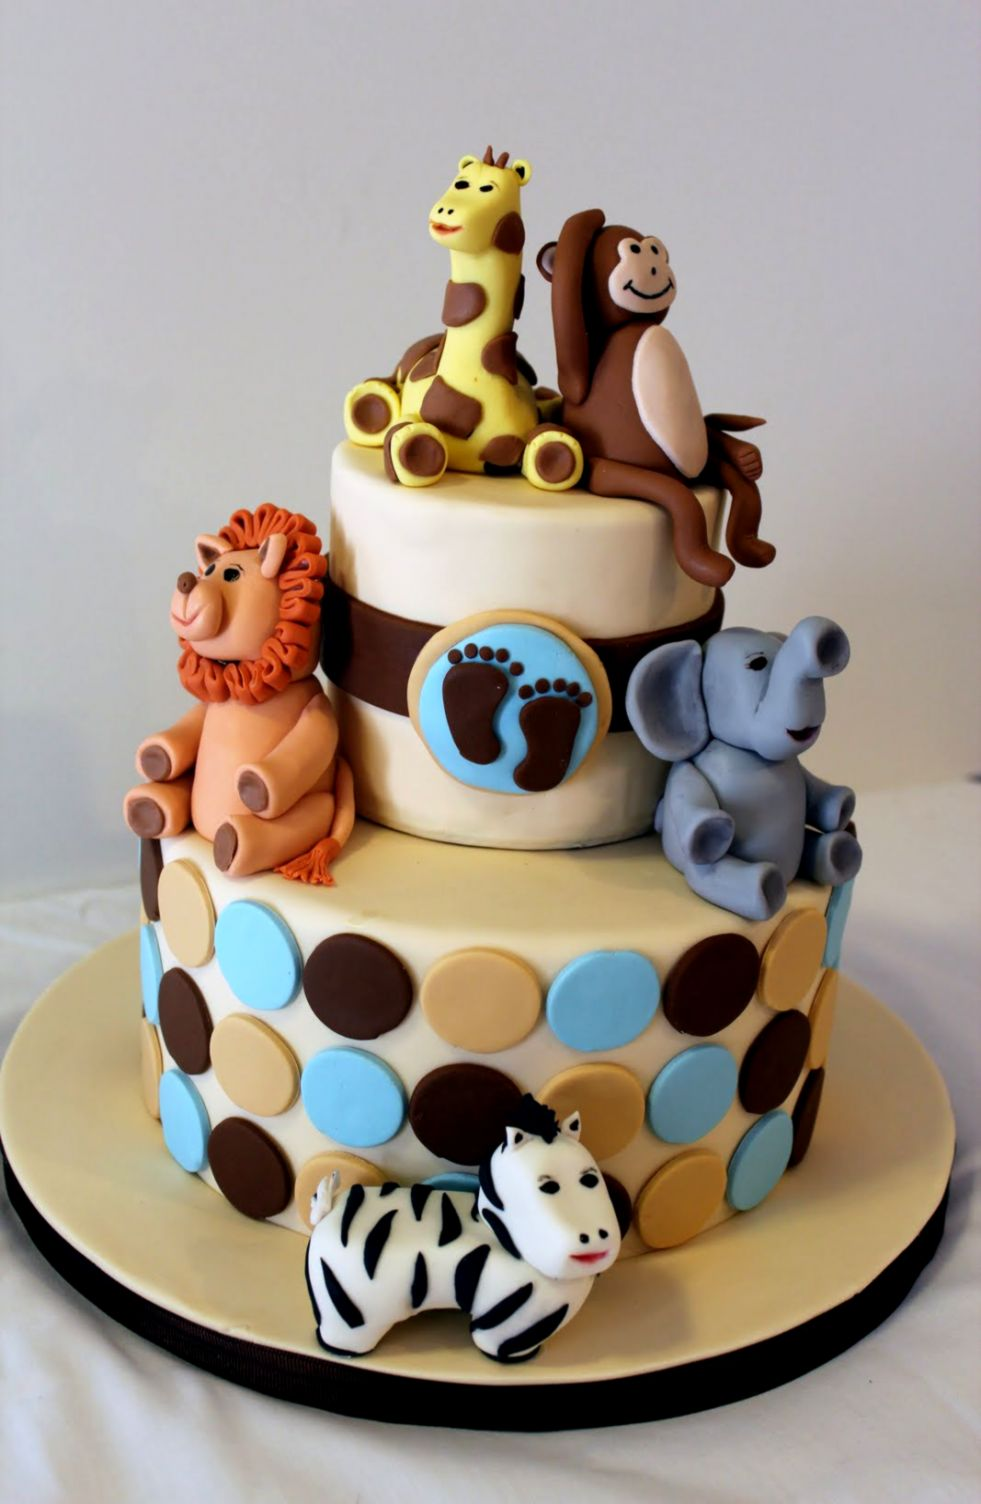 Living Room Decorating Ideas Baby Shower Cake Zoo Animals